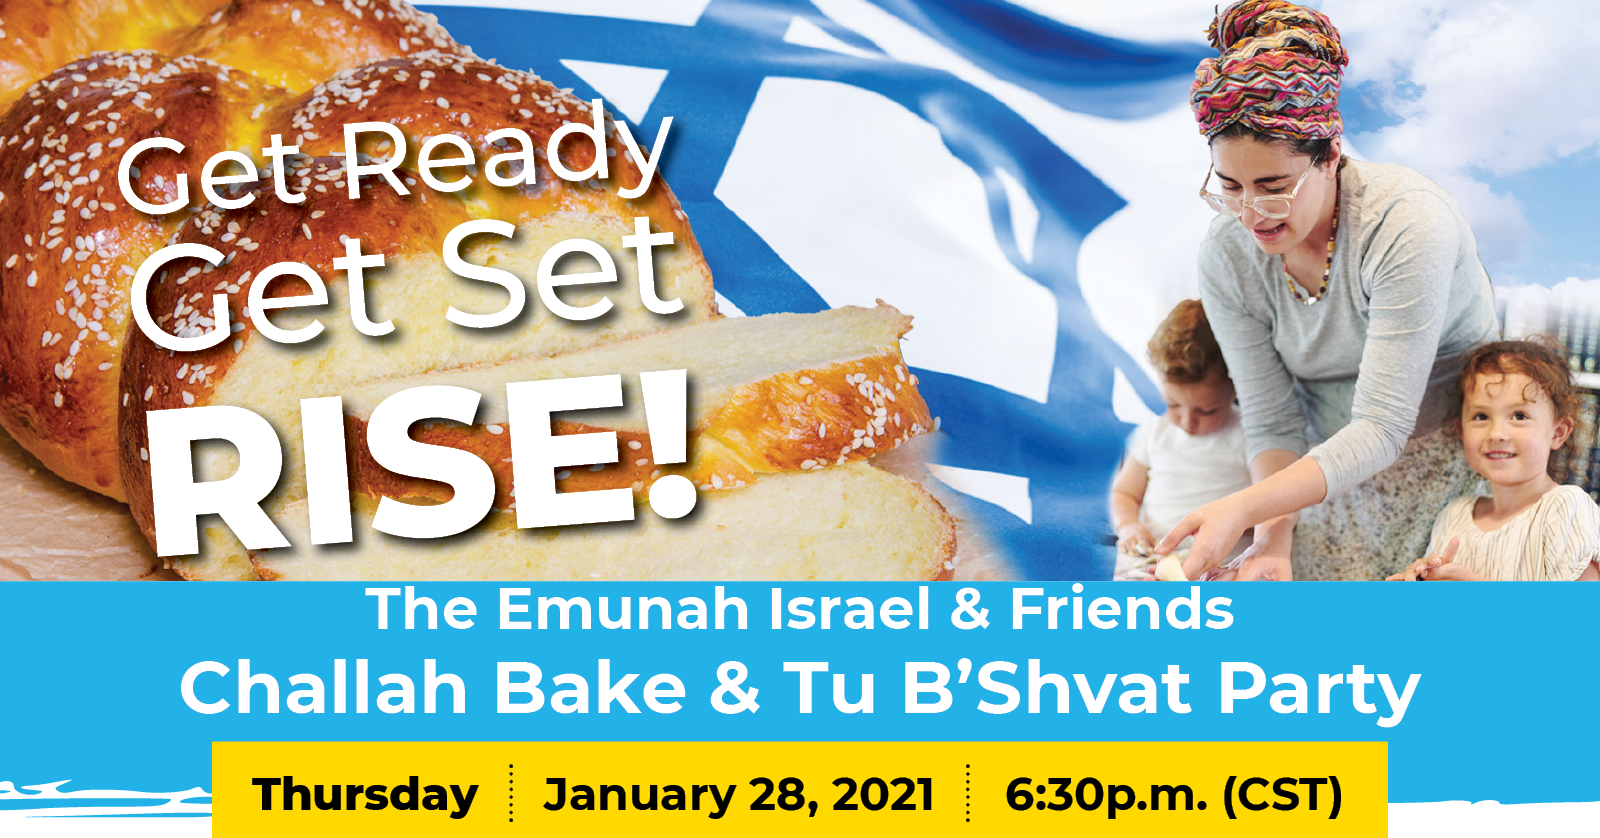 Banner Image for The Emunah Israel & Friends Challah Bake & Tu B'Shvat Party